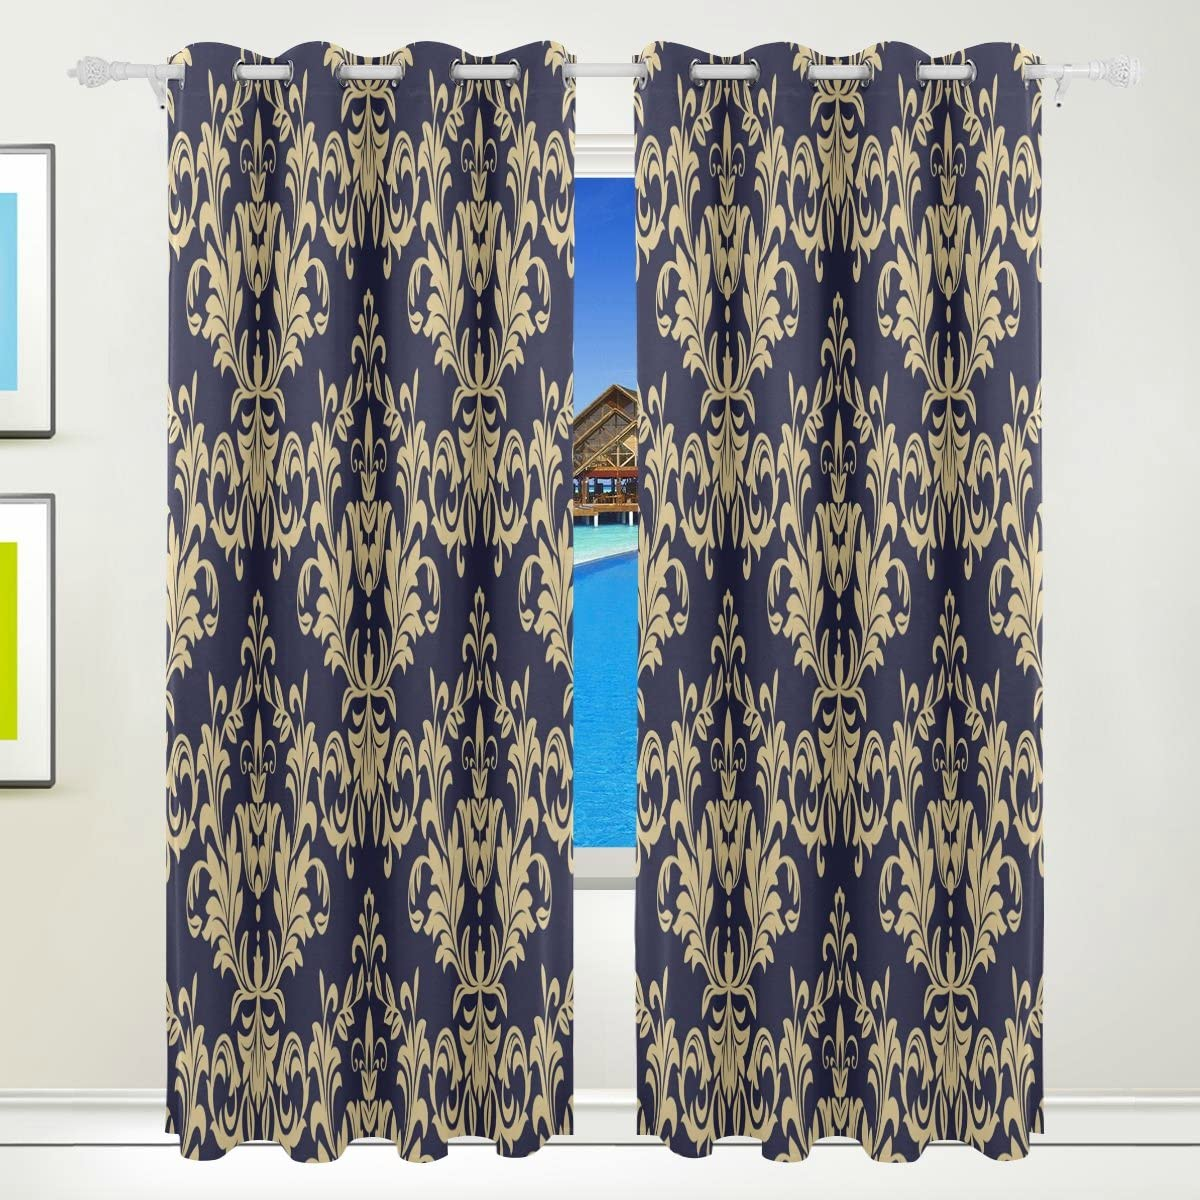 Amazon.com: Use4 Gold Black Blue Damask Window Curtain Panels Drape 84 x 55  inches for Office Living Dining Bedroom Window Room Decoration: Home &  Kitchen